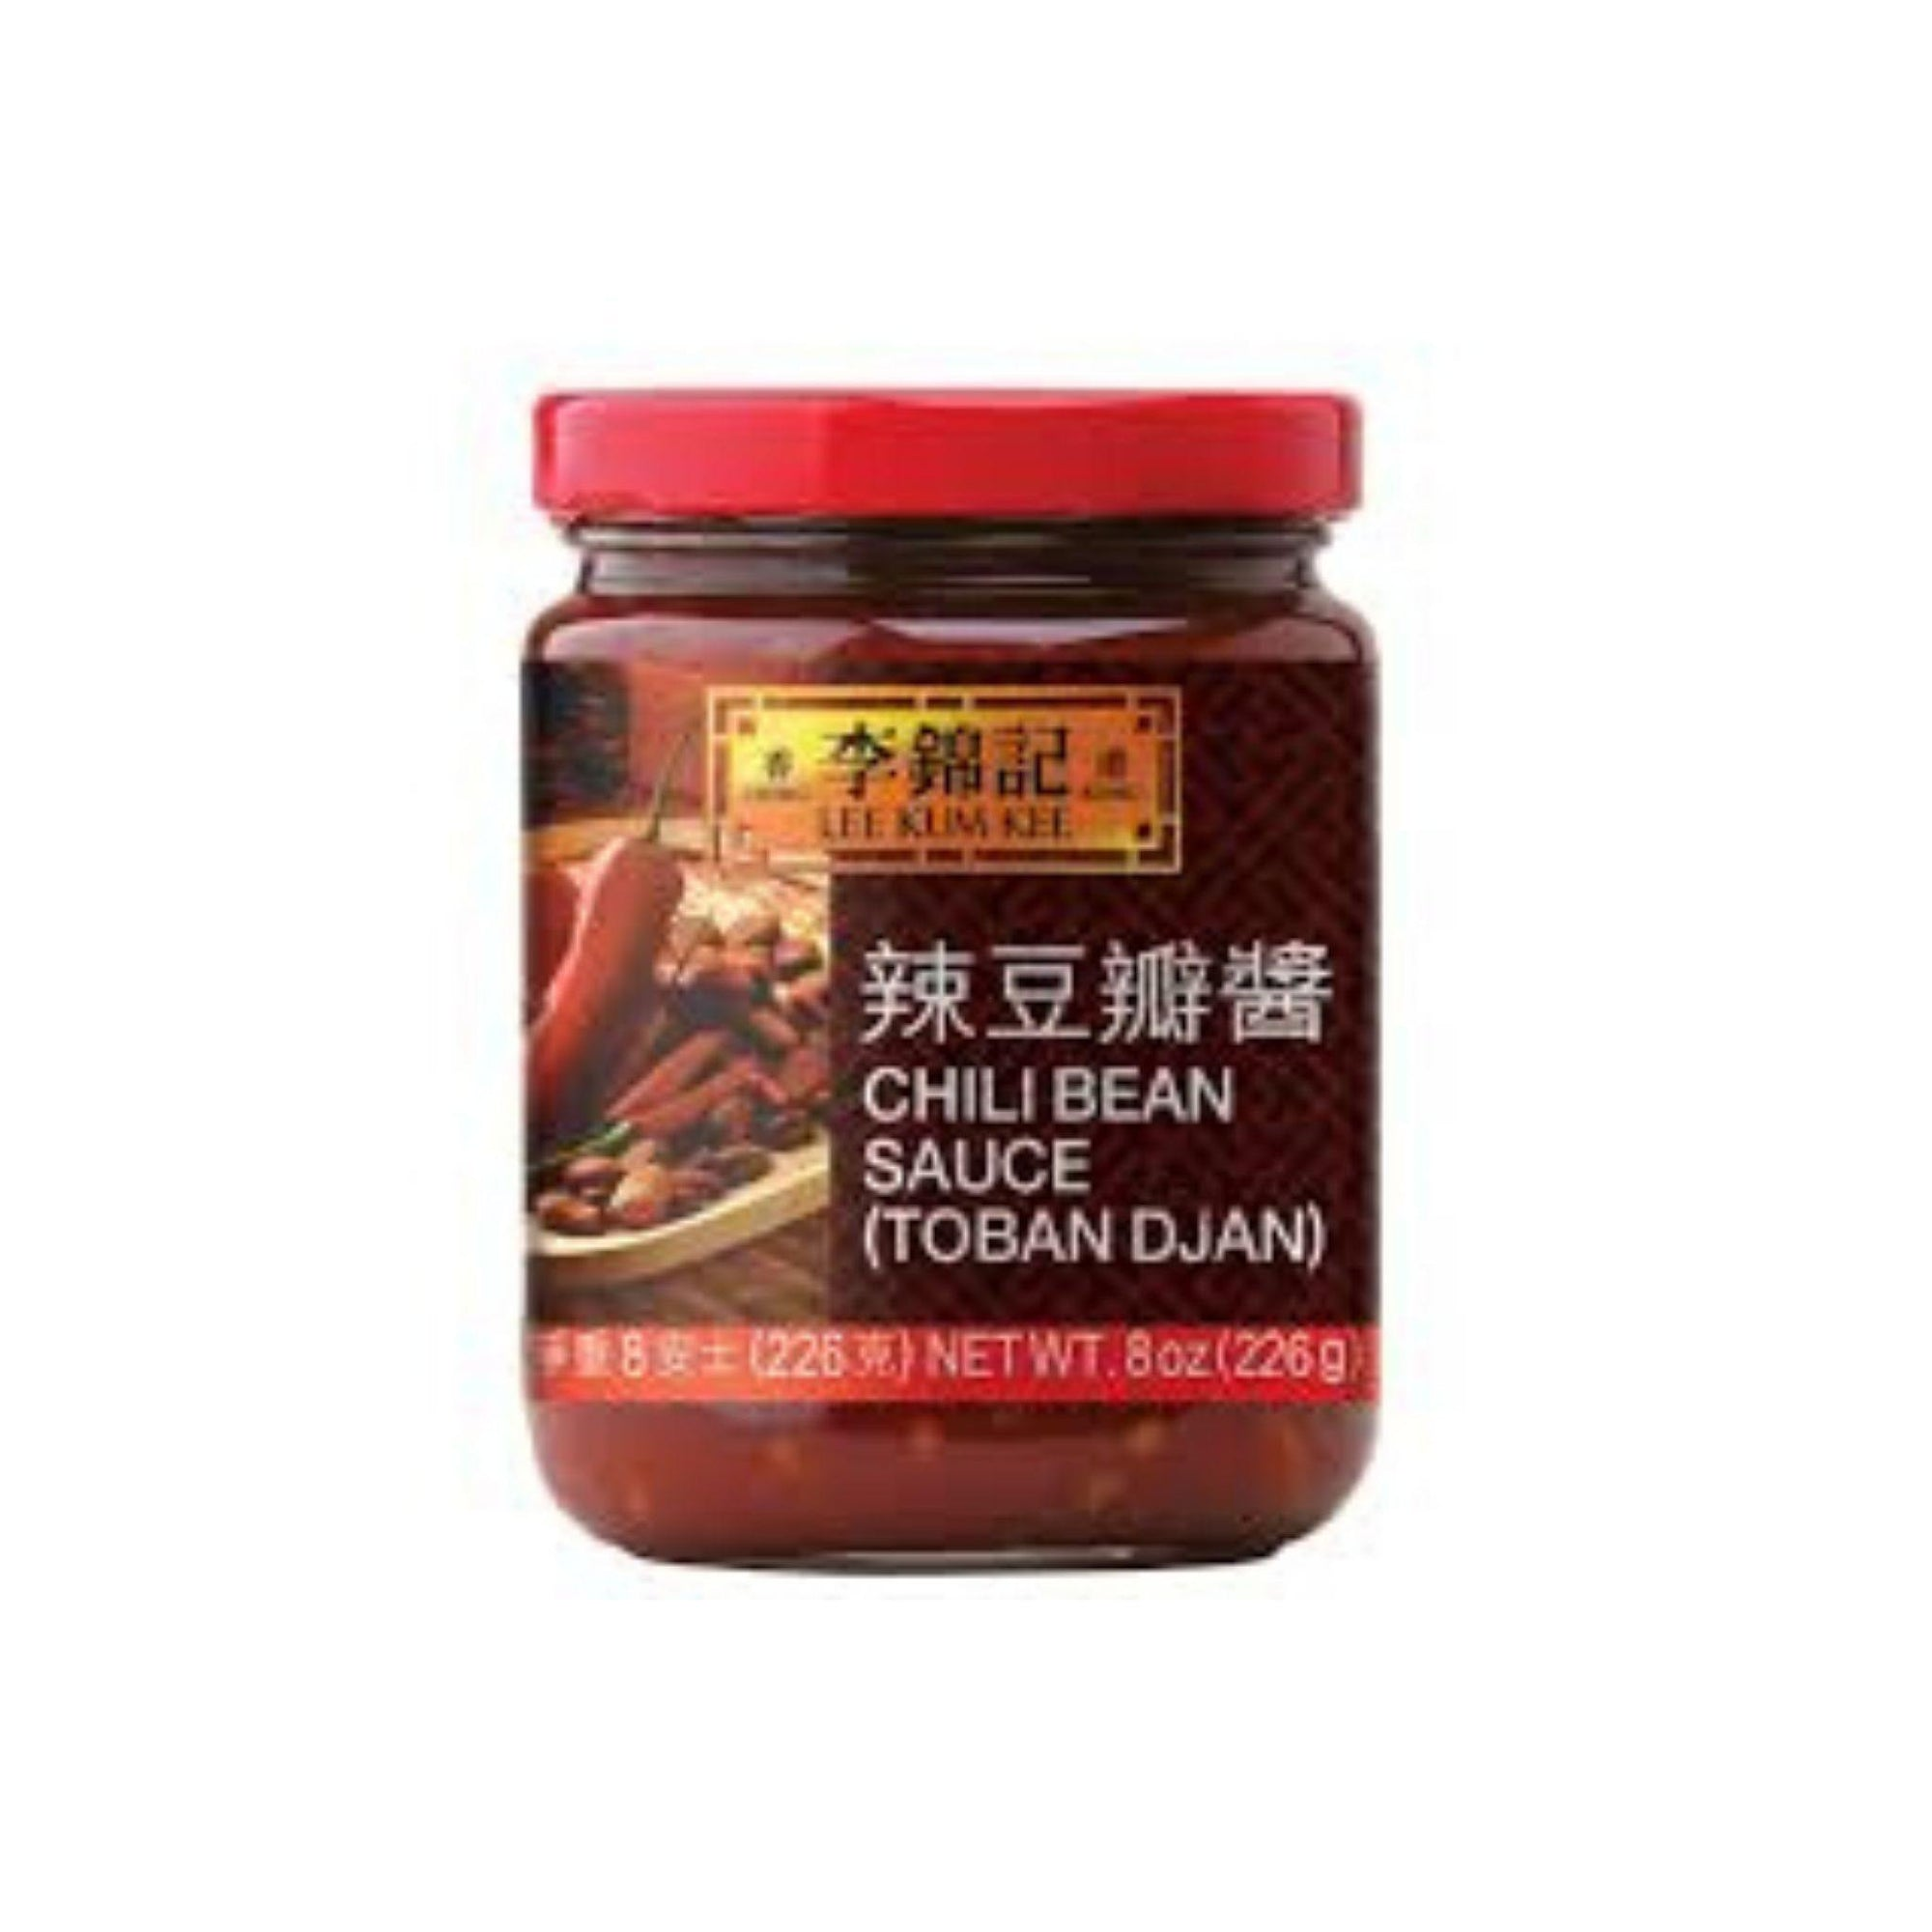 LKK Chilli Bean Sauce 368G - Asian Harvest